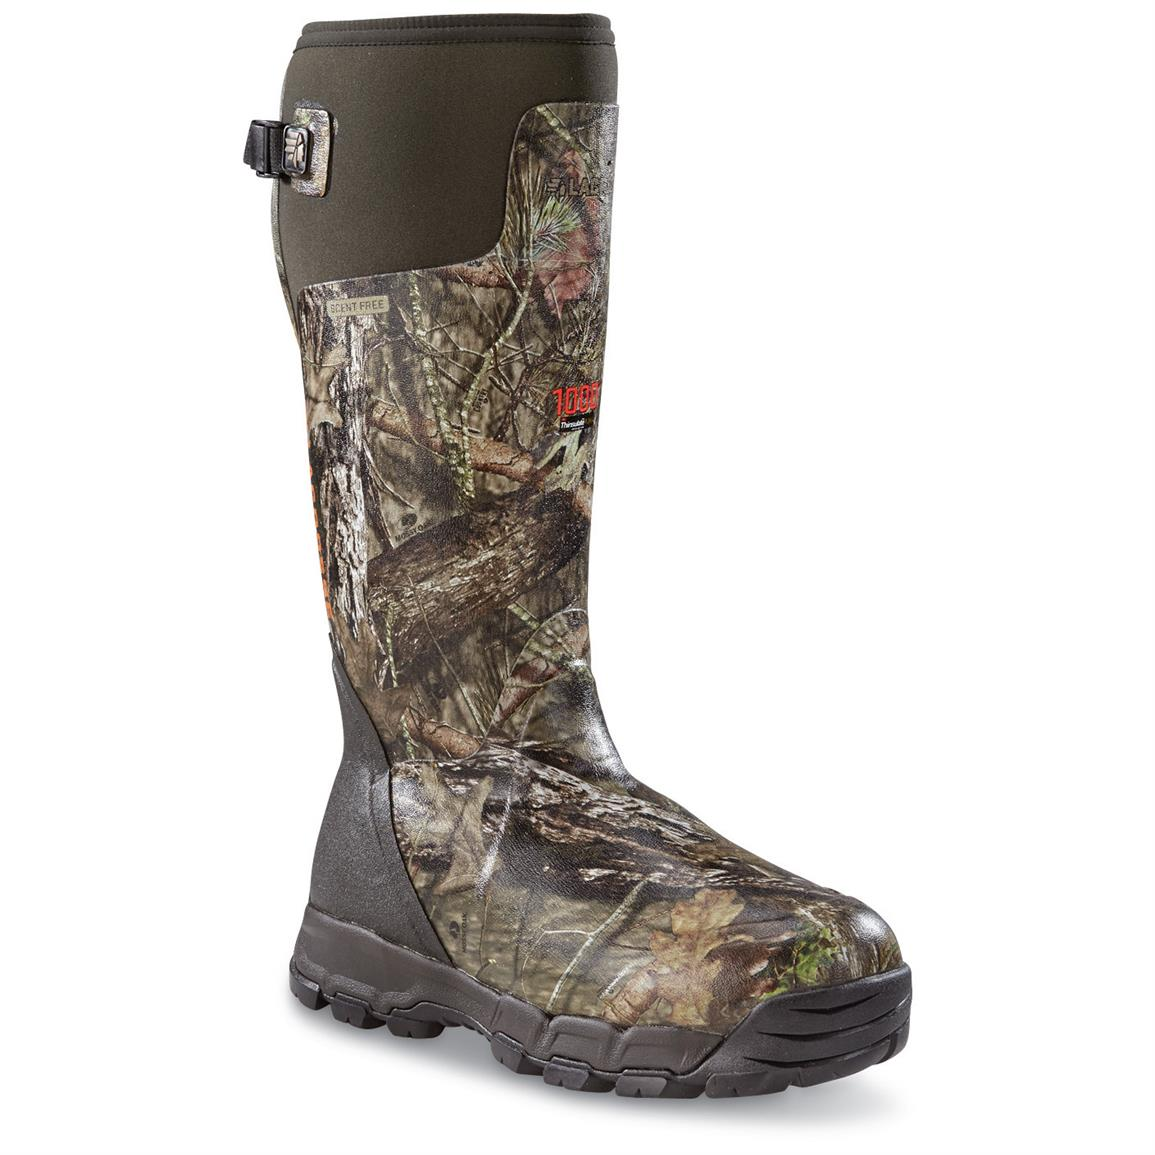 LaCrosse Men's Alphaburly Pro Rubber Waterproof  Hunting Boots, Mossy Oak Break-Up Country